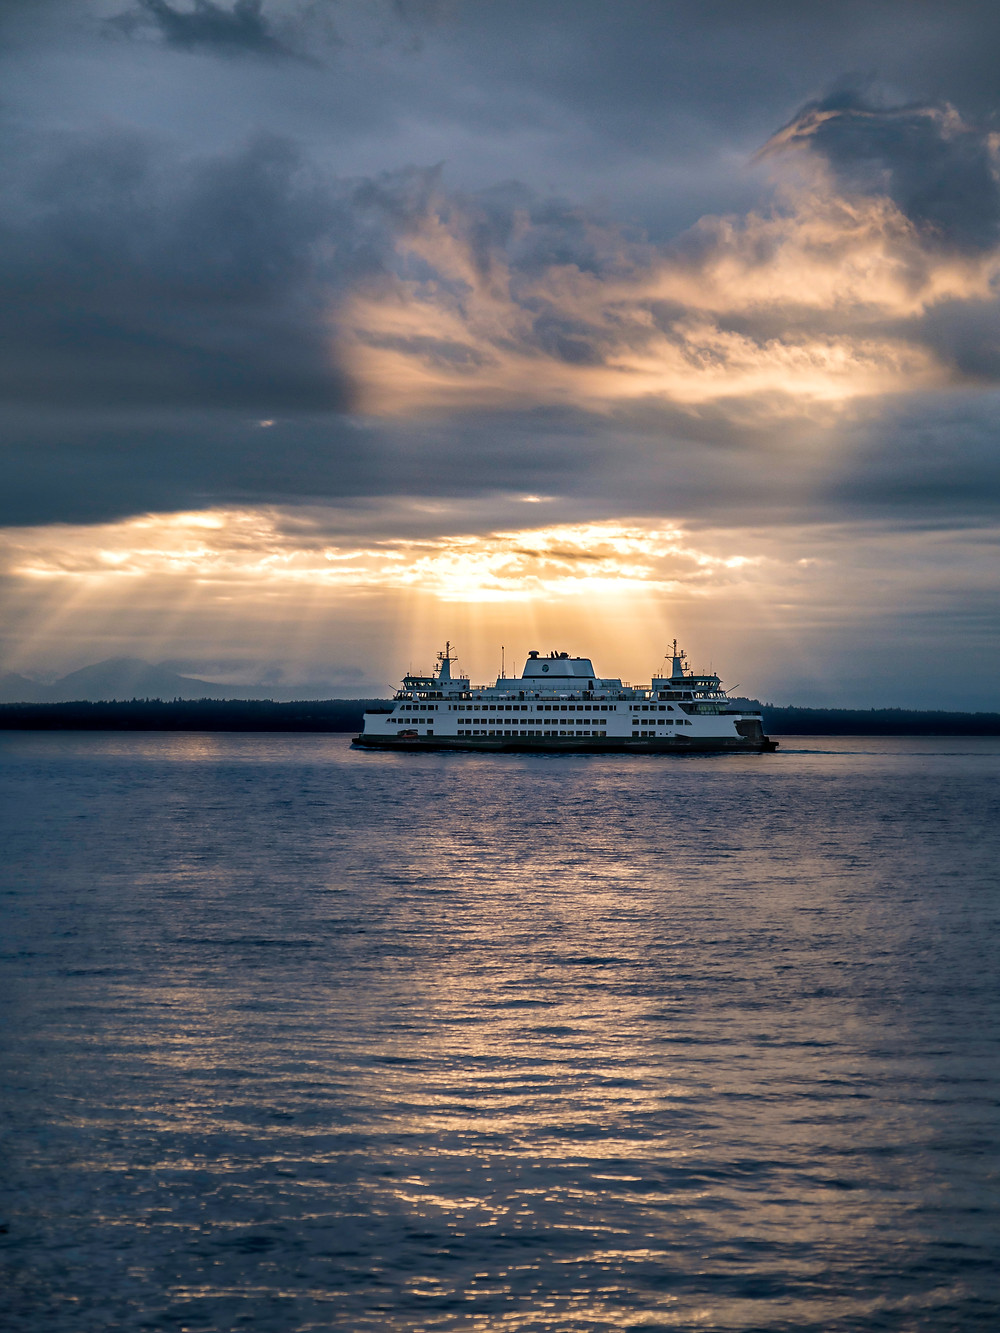 Visit Vashon Island if you want to explore Seattle like a local